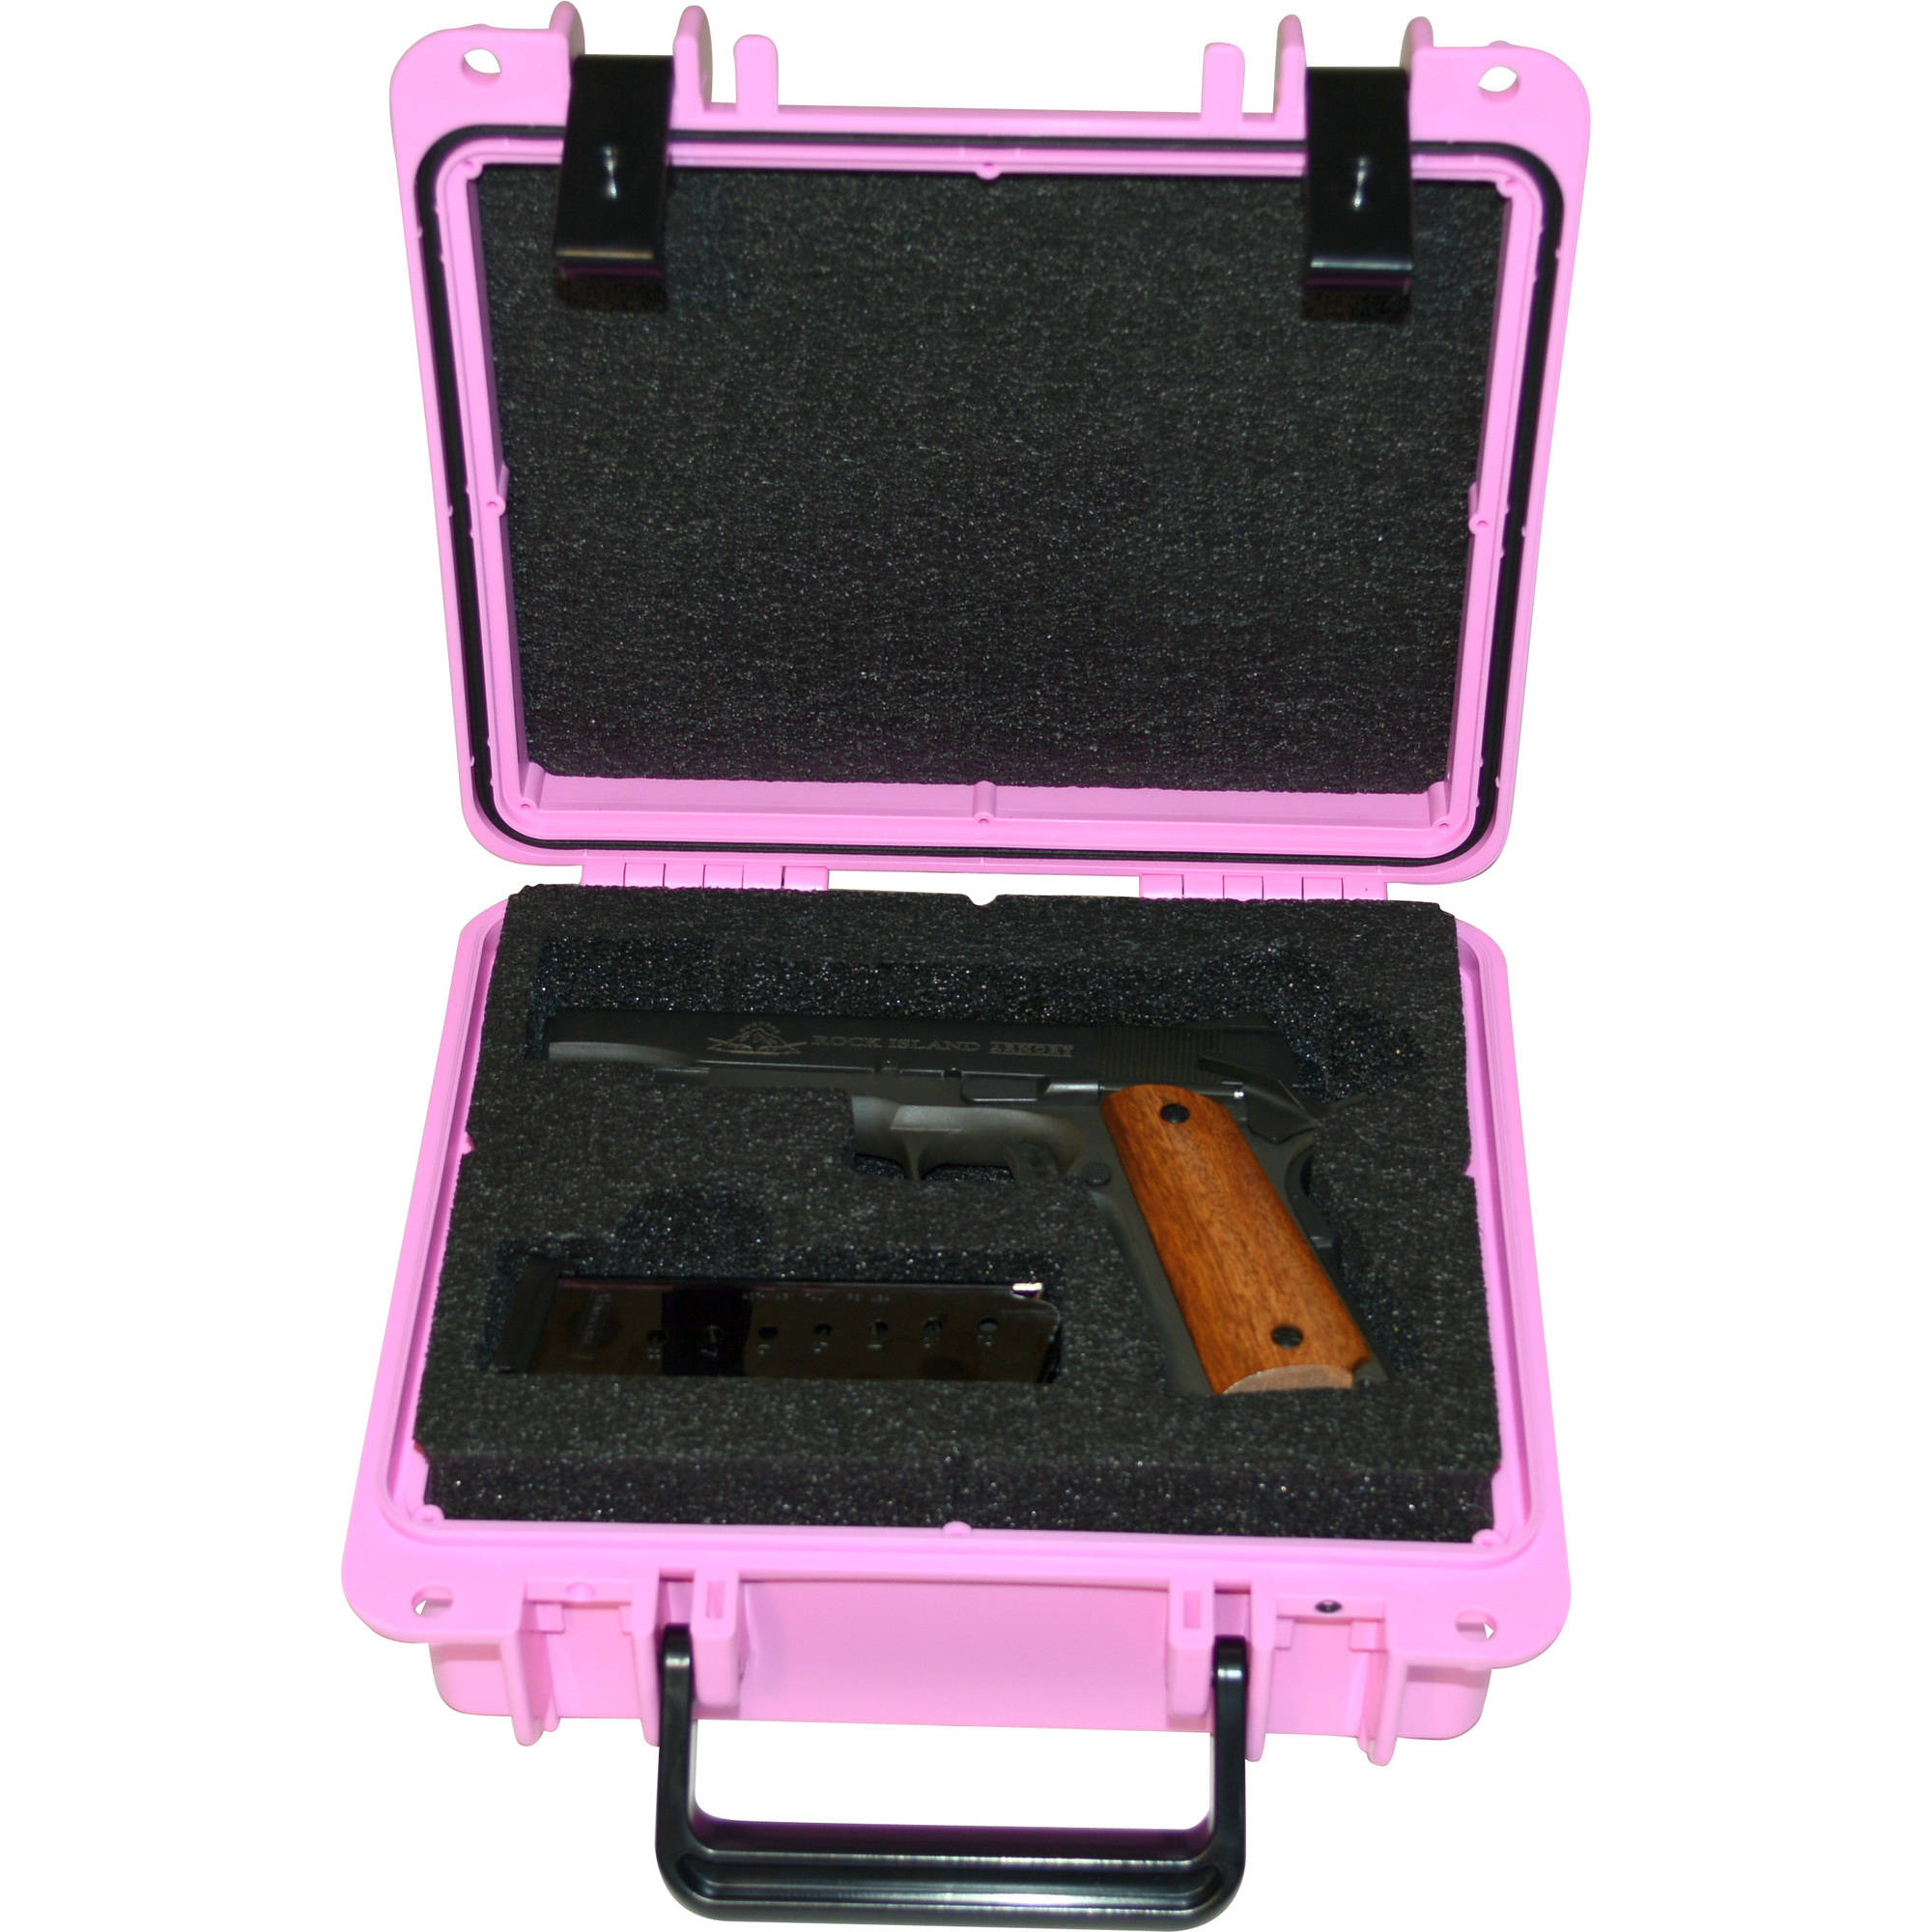 Quick Fire MultiFit Pistol Case, QF340